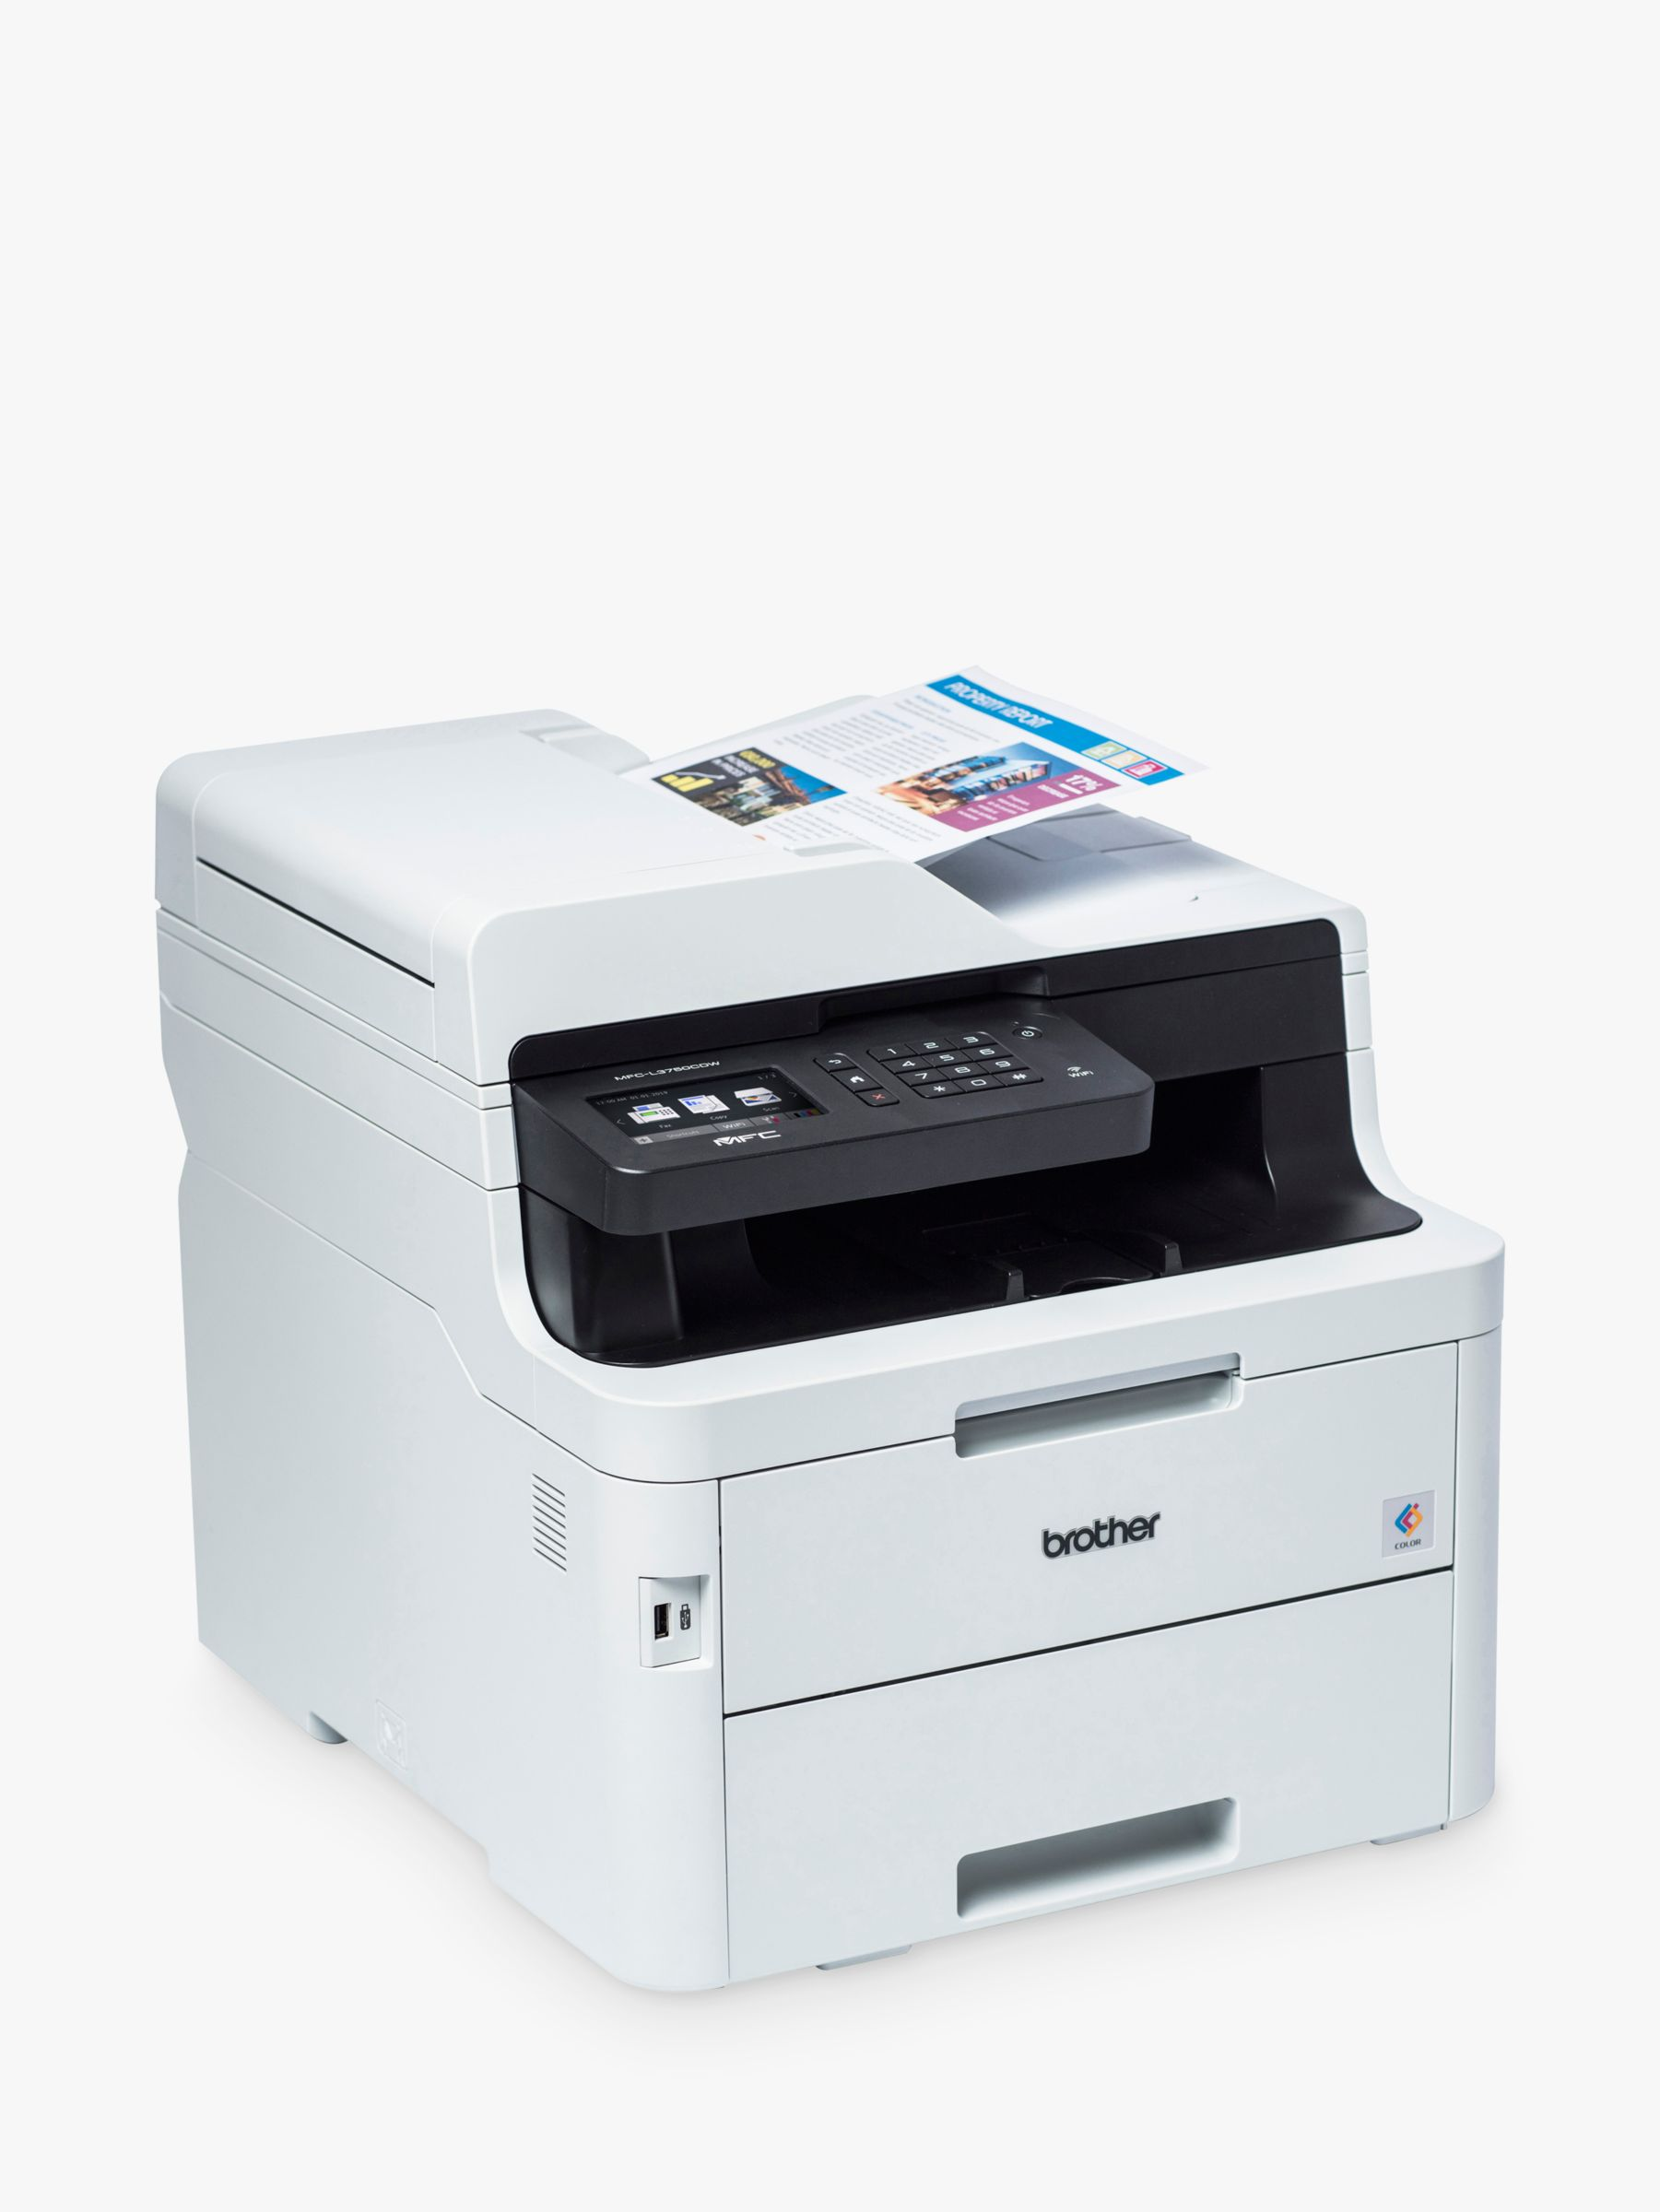 Brother Brother MFC-L3750CDW Wireless All-in-One Colour Laser Printer & Fax Machine